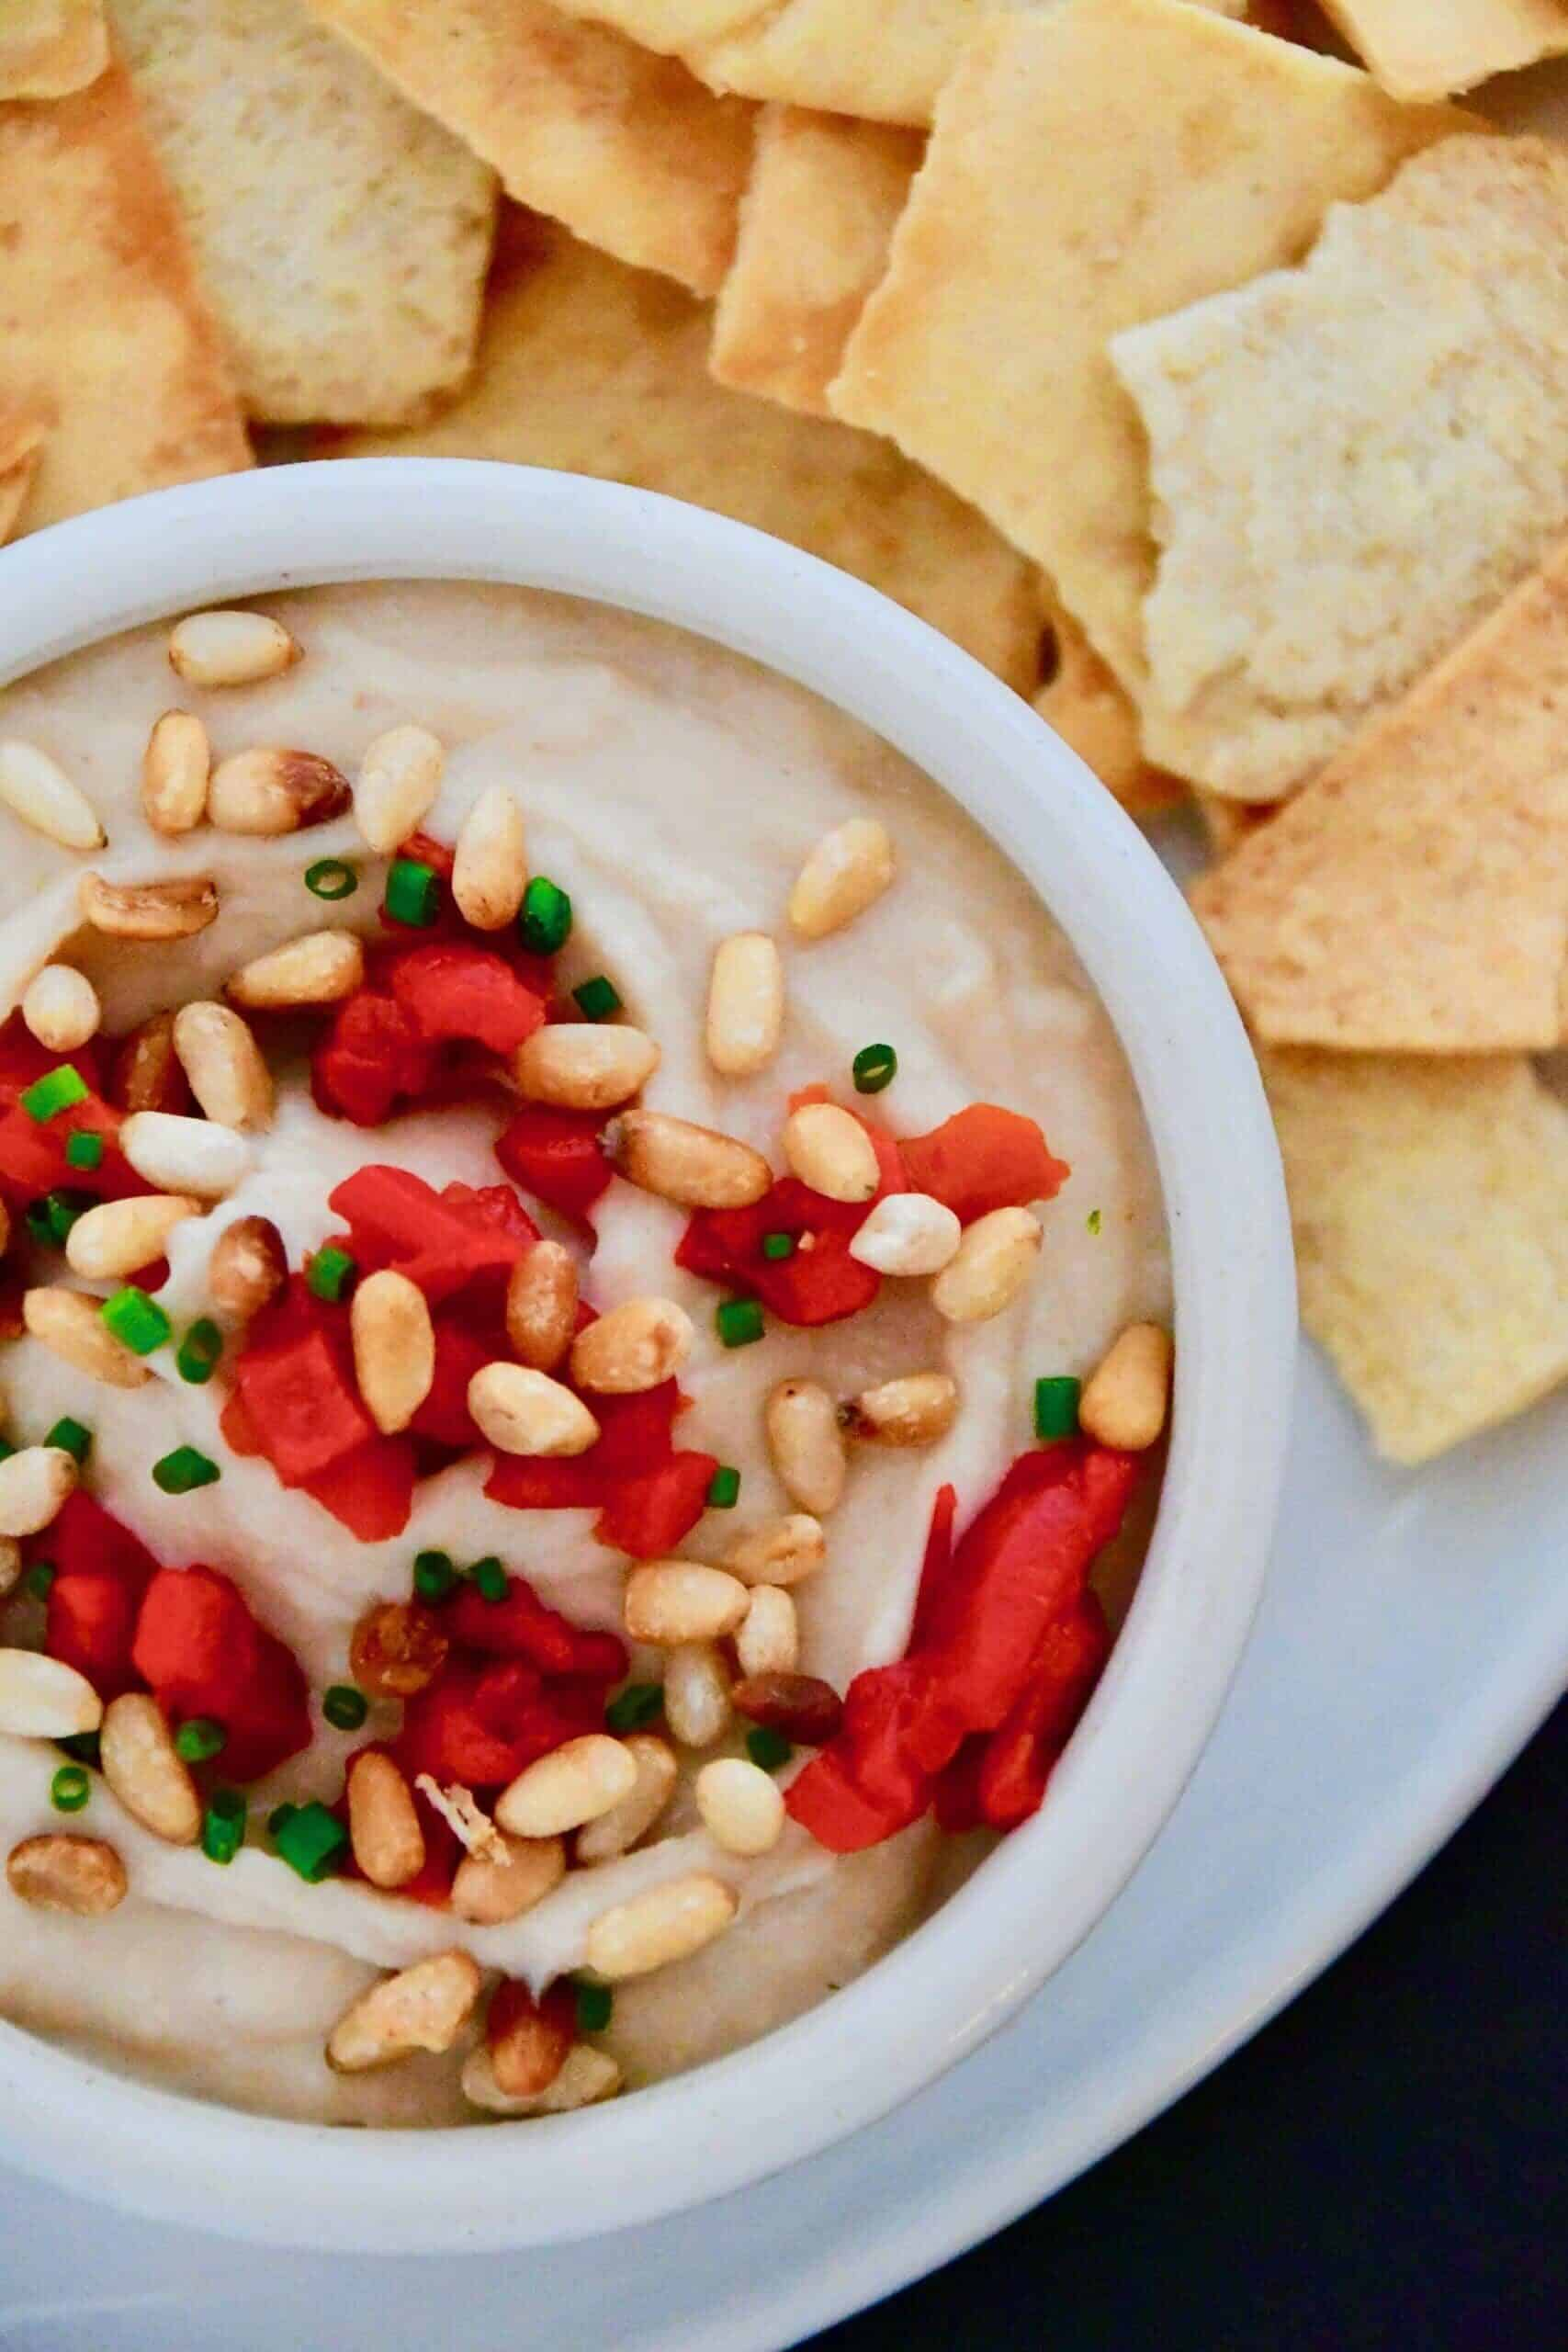 Joanna Gaines White Bean Hummus in a bowl topped with extra pine nuts and red peppers.